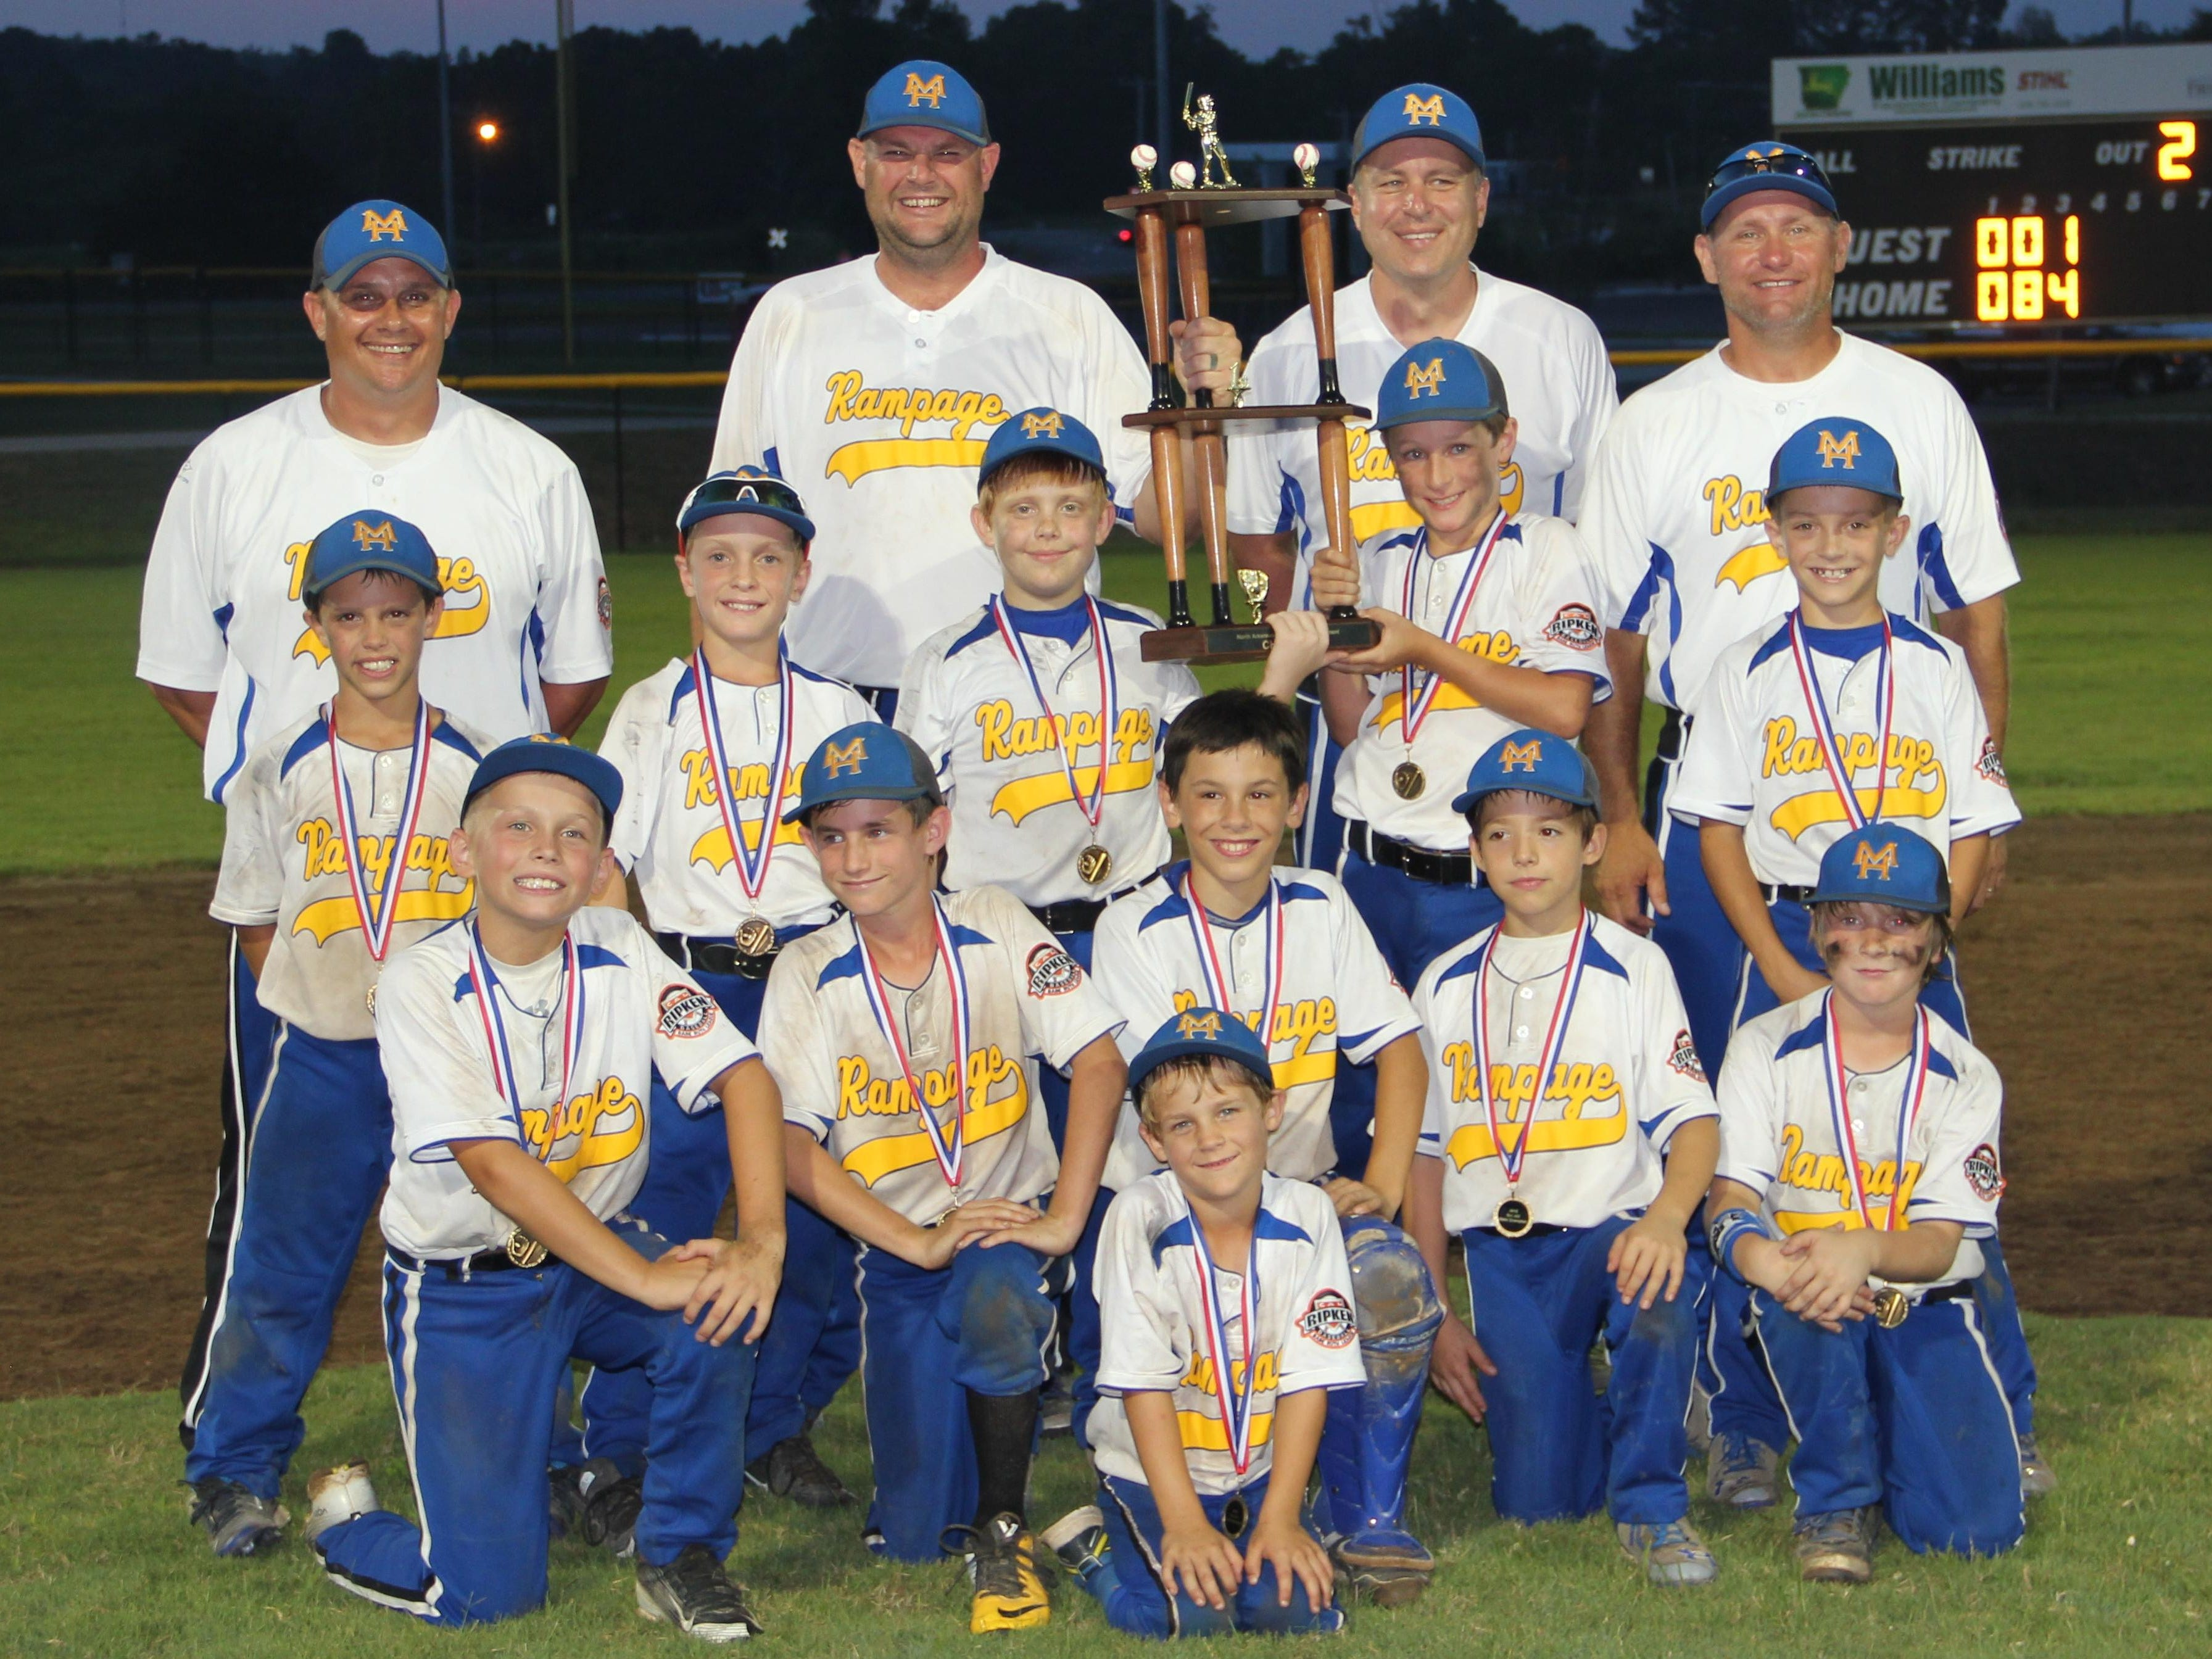 The Mountain Home Rampage 9-year-old All-Stars won the Cal Ripken North Arkansas State Championship for the second straight season Sunday in Batesville. The Rampage defeated Rogers 12-0 and Bentonville 17-2 in pool play to take a No. 1 seed into bracket play Sunday. Mountain Home then defeated Bentonville 12-2, Batesville 5-0 and Delta 12-1 in the championship. Team members are: front, bat boy Koen Bickford; second row, from left, Cade Yates, Ky Bickford, Ike Barrow, Aidan Sanders, McGee Harris; third row, Ashton Lemmons, Will Mooney, Brady Lance, Ty Tilton, James Douglas; fourth row: coaches Chris Lemmons, Jake Bickford, Kenny Sanders and Jimmy Yates.